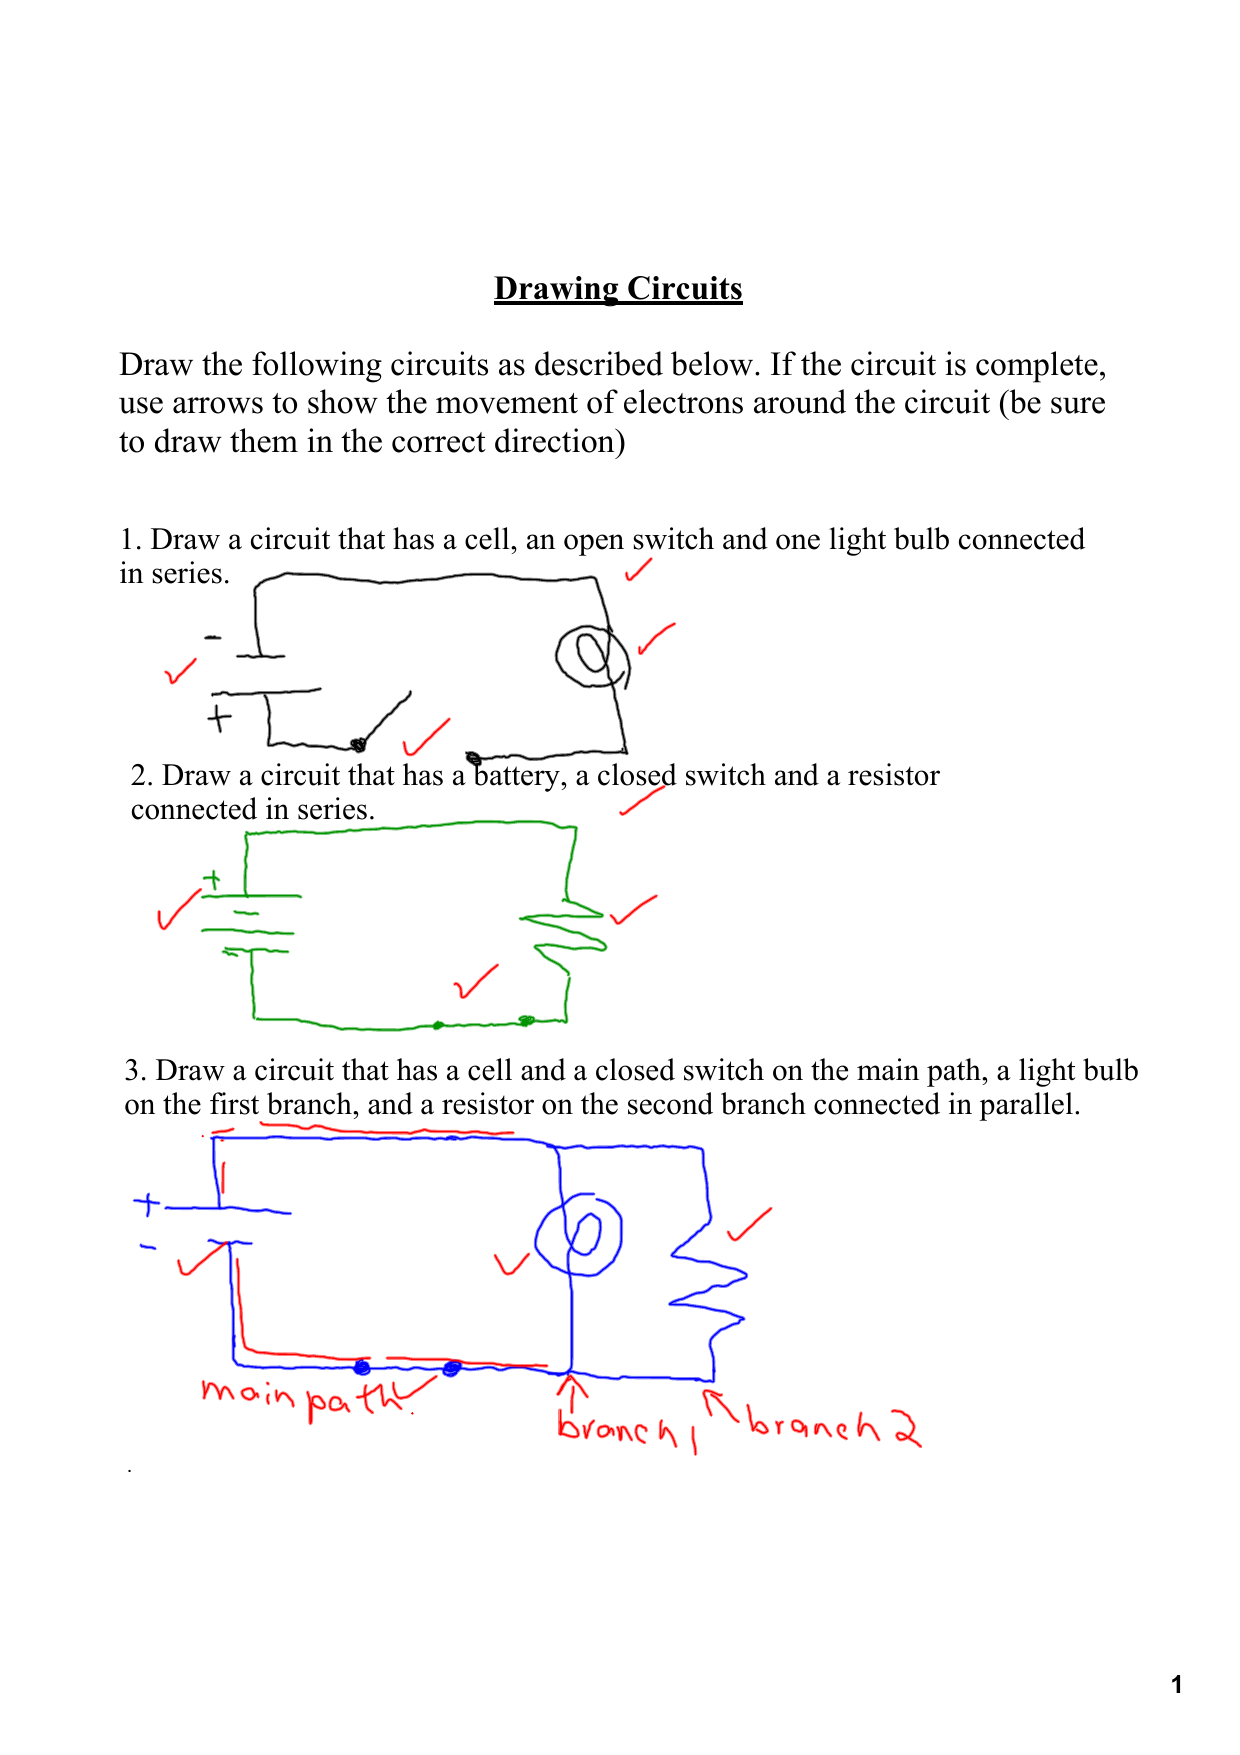 drawing circuits draw the following circuits as described